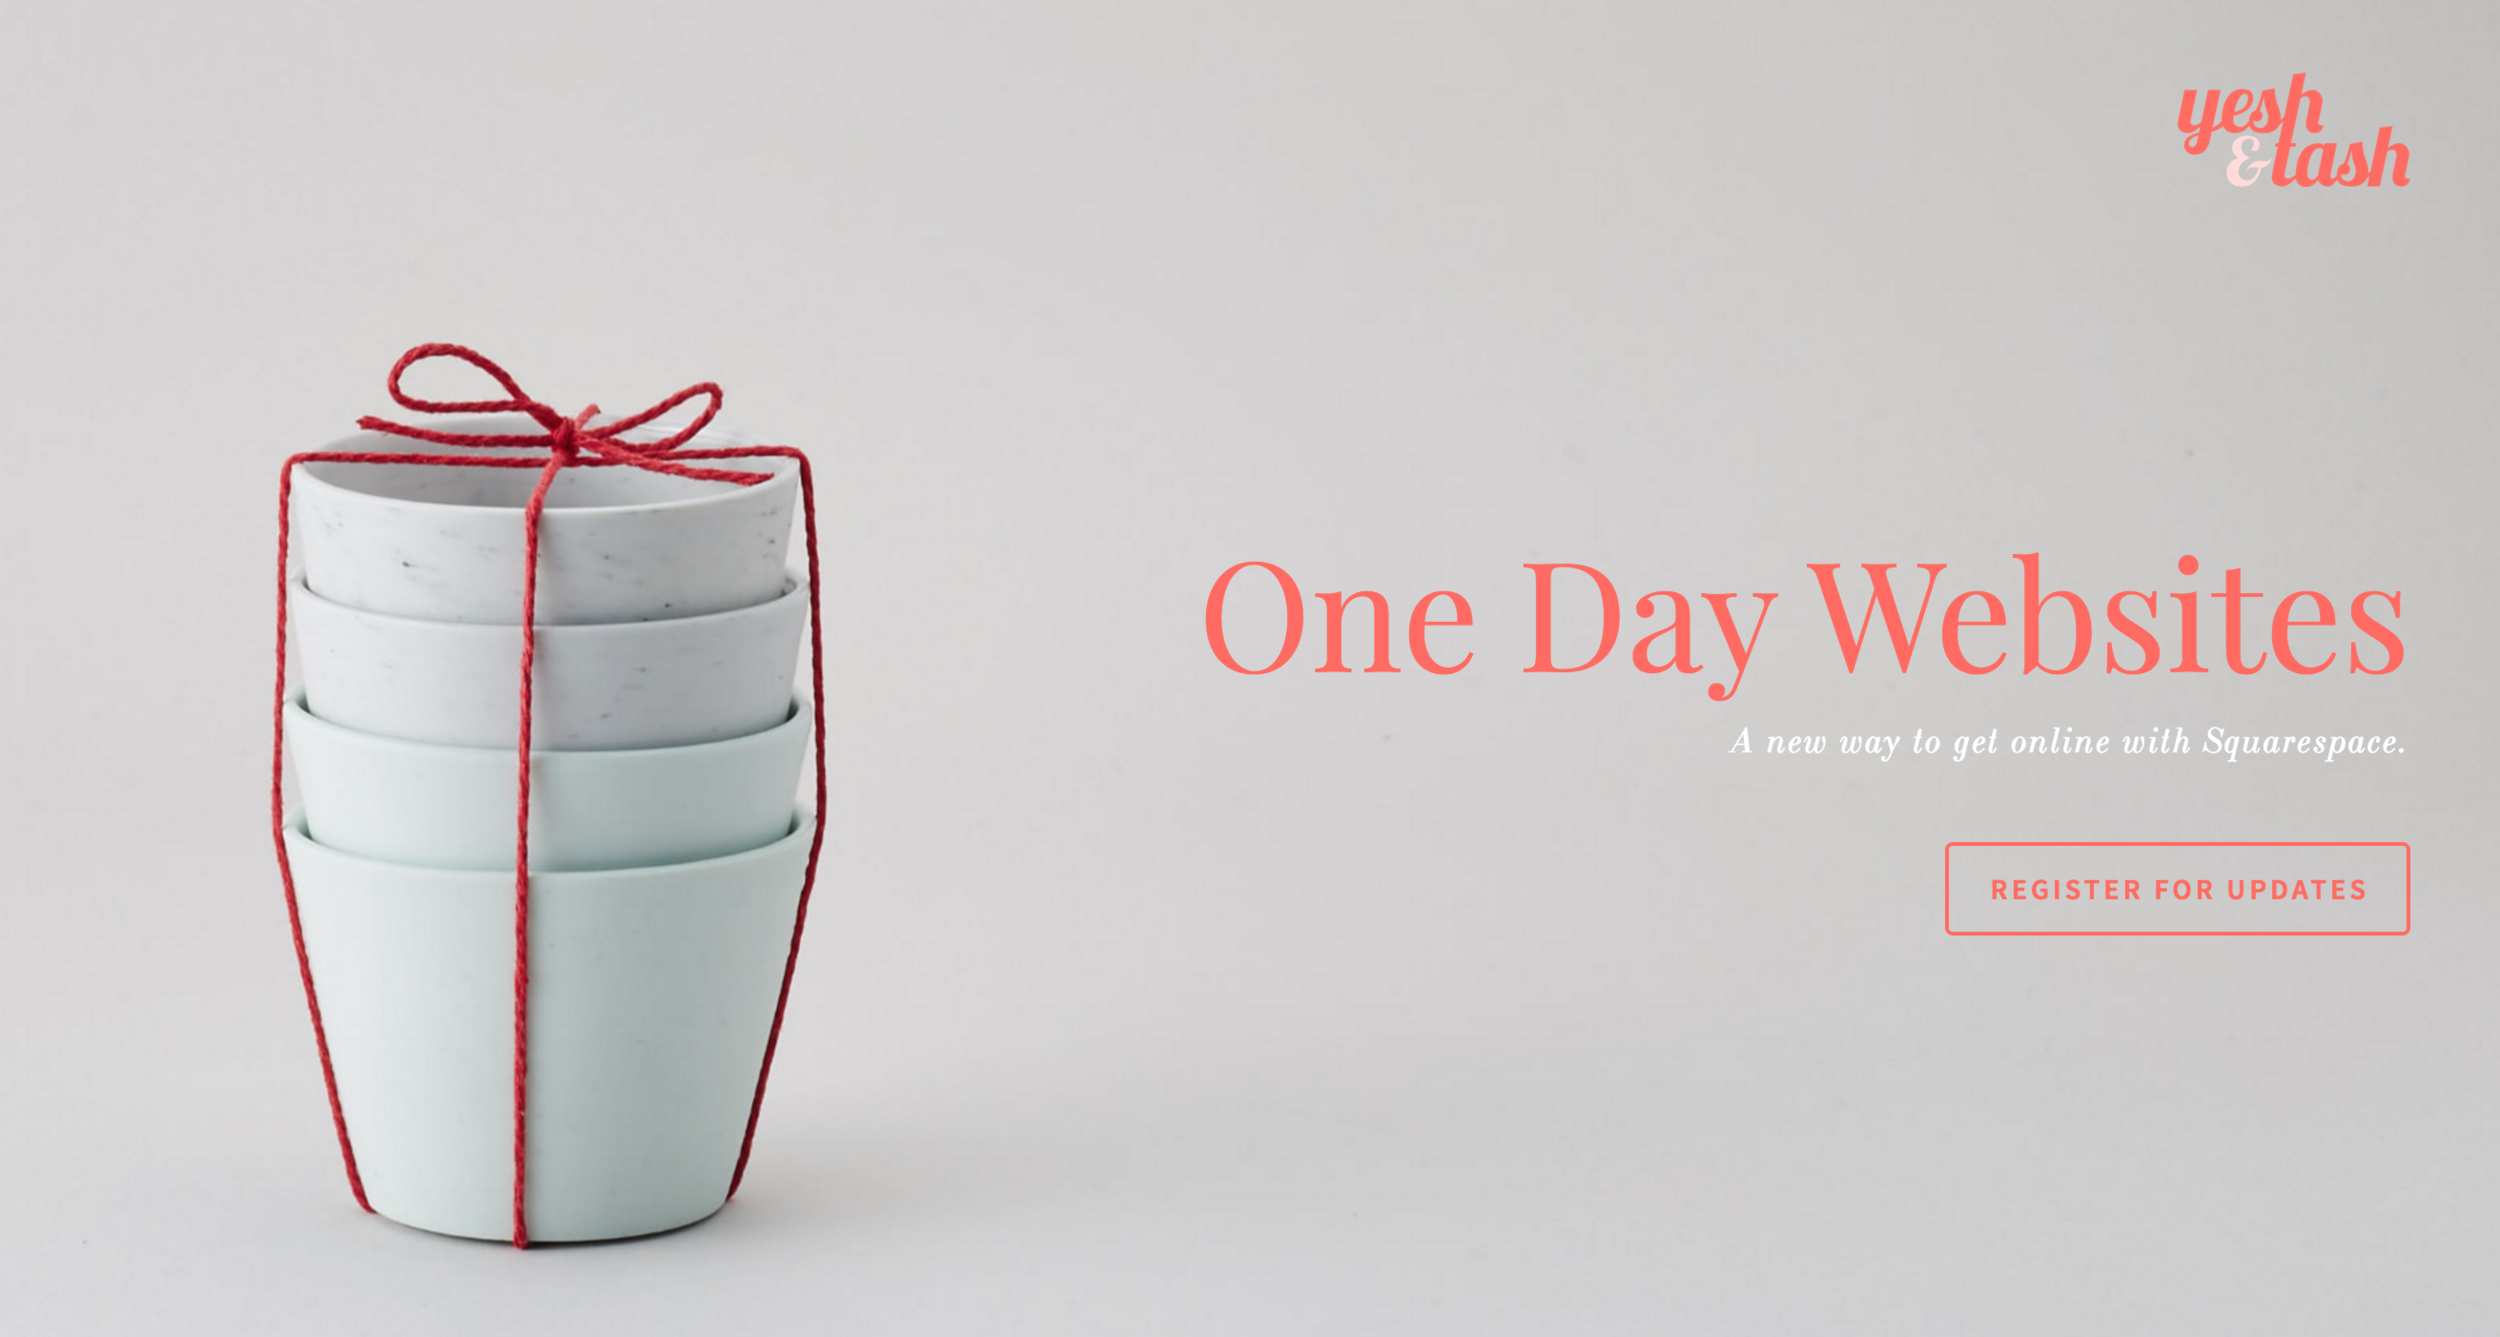 One Day Websites from Yesh&Tash